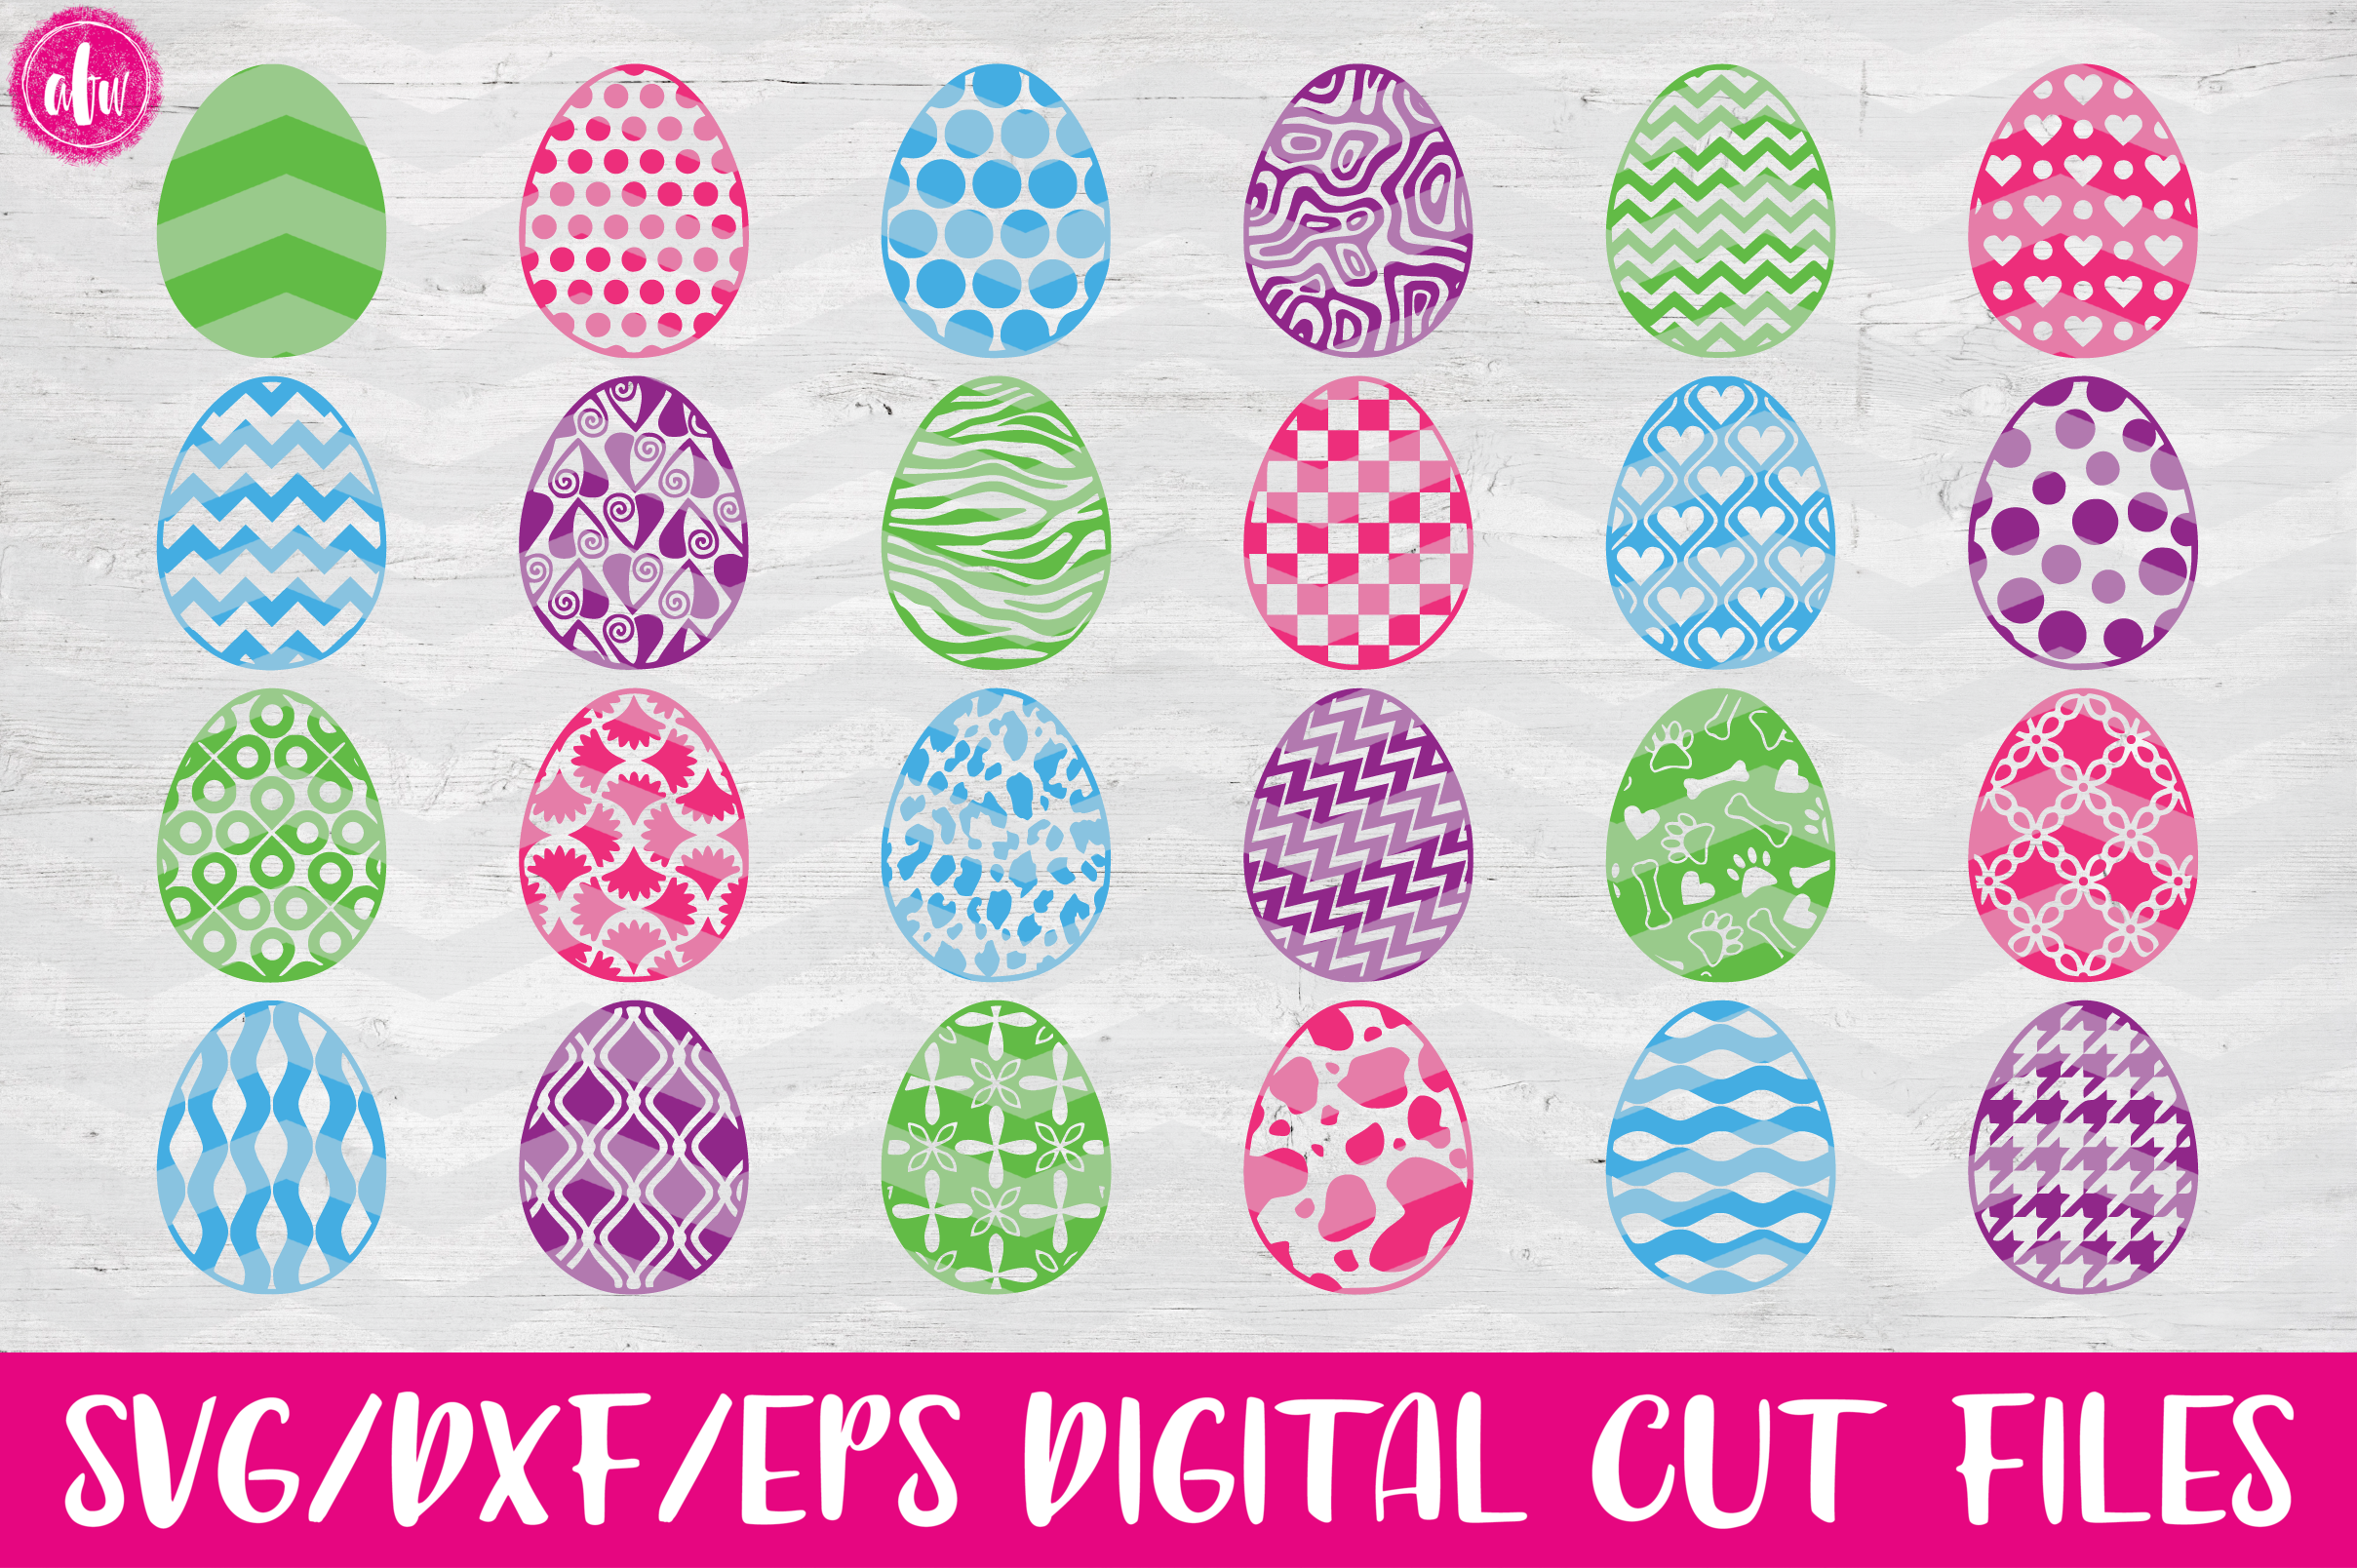 Pattern Easter Eggs Set of 40 - SVG, DXF, EPS Cut Files example image 1